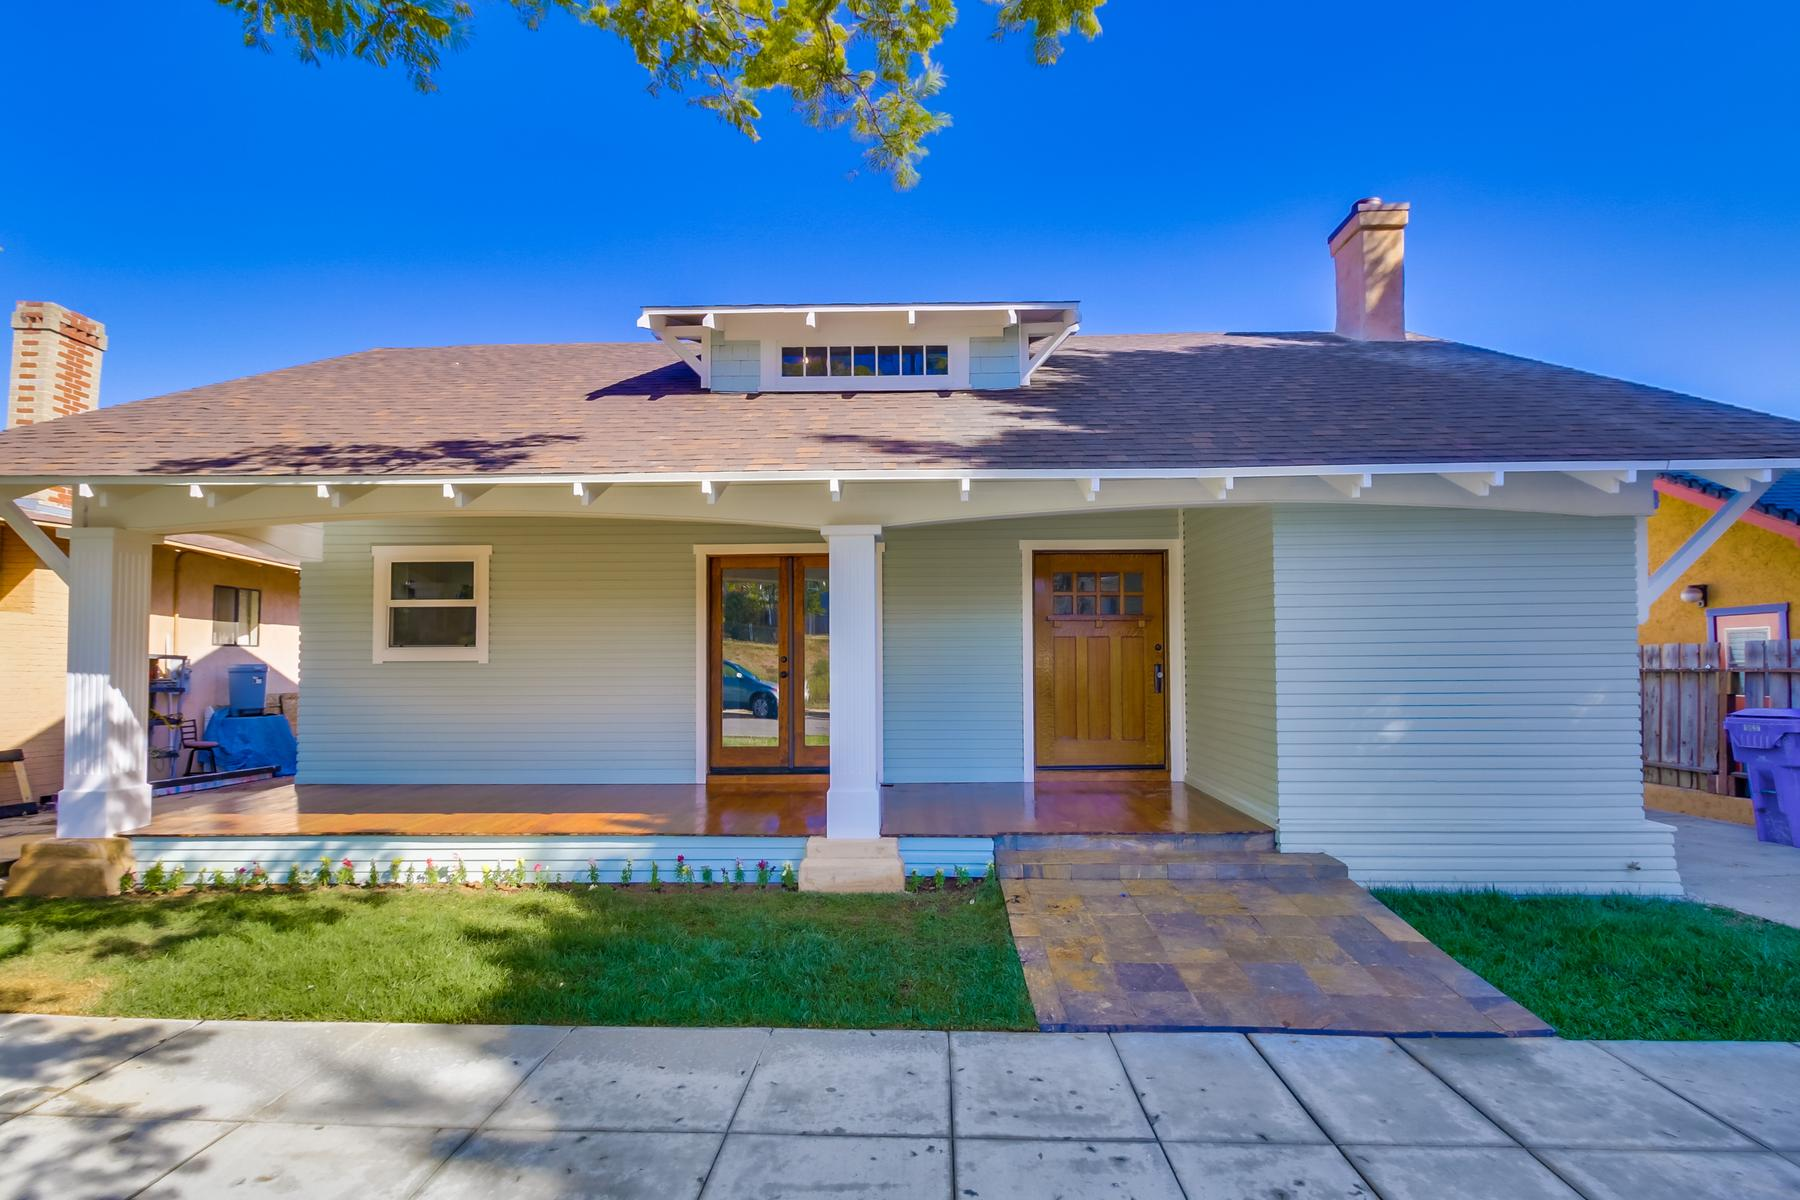 Single Family Home for Sale at 1827 Bancroft Street South Park, San Diego, California 92102 United States